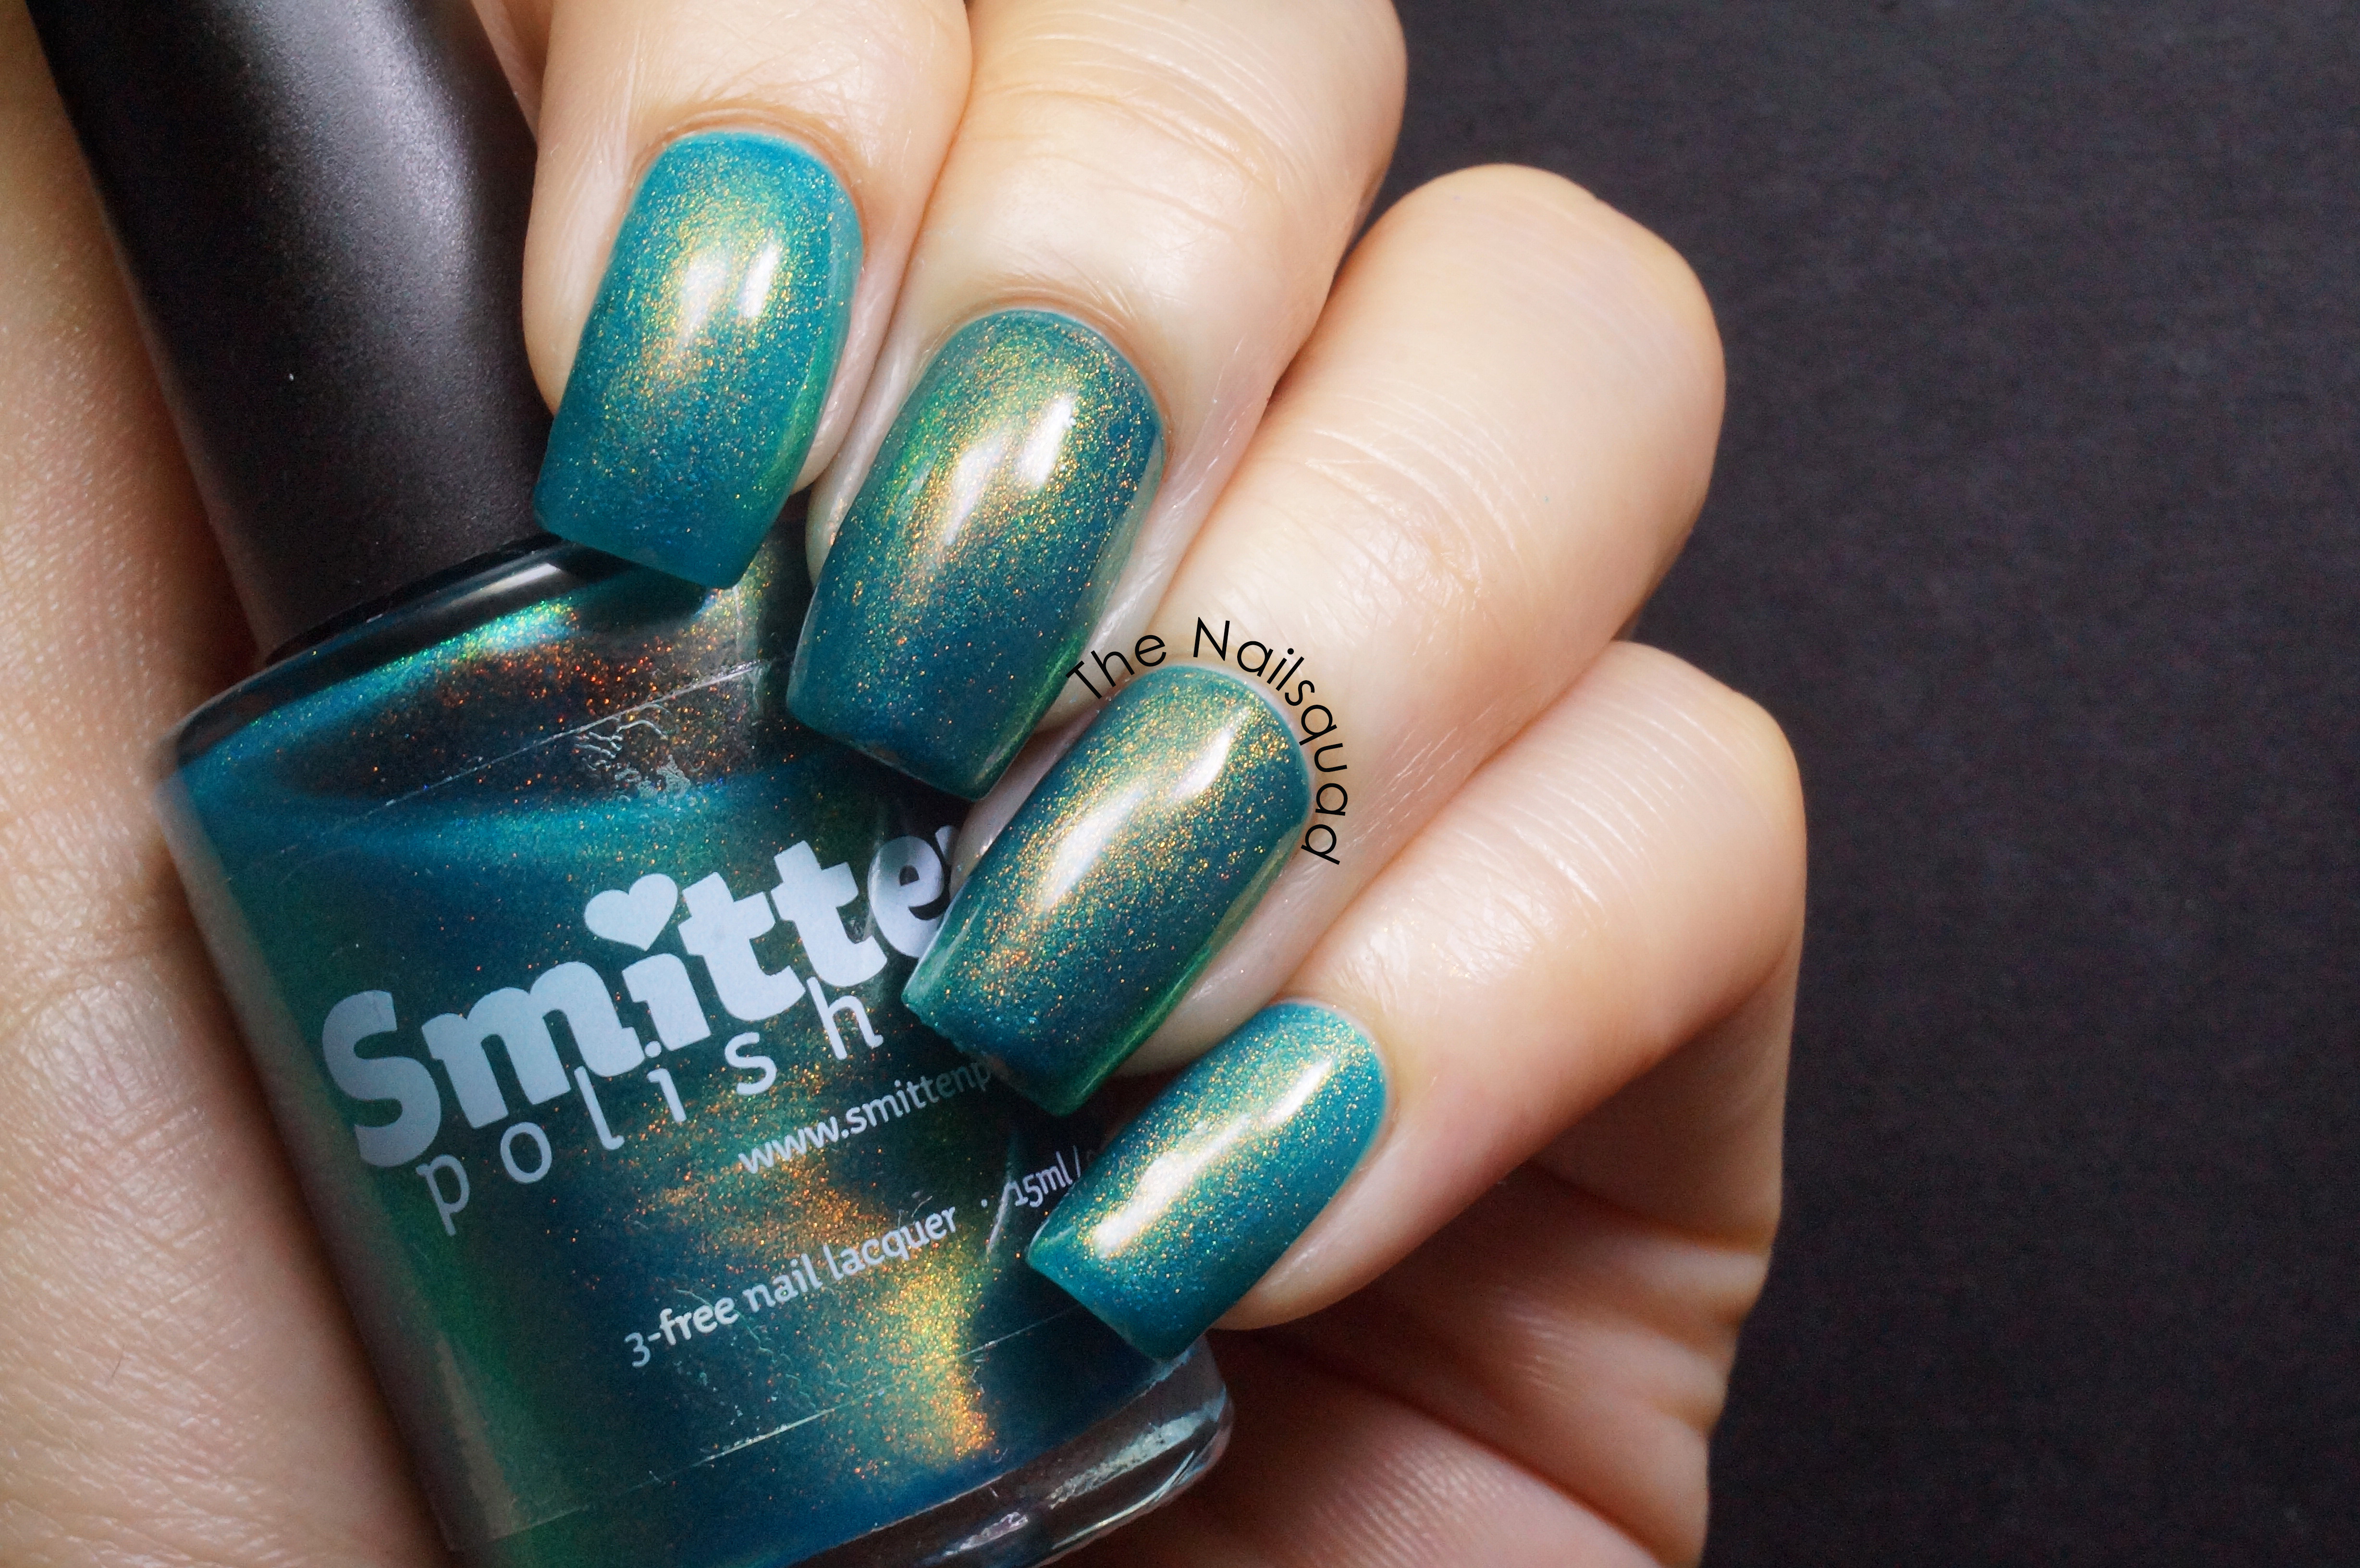 A Wedding Dress That Isn't Bright Turquoise by Smitten Polish ...